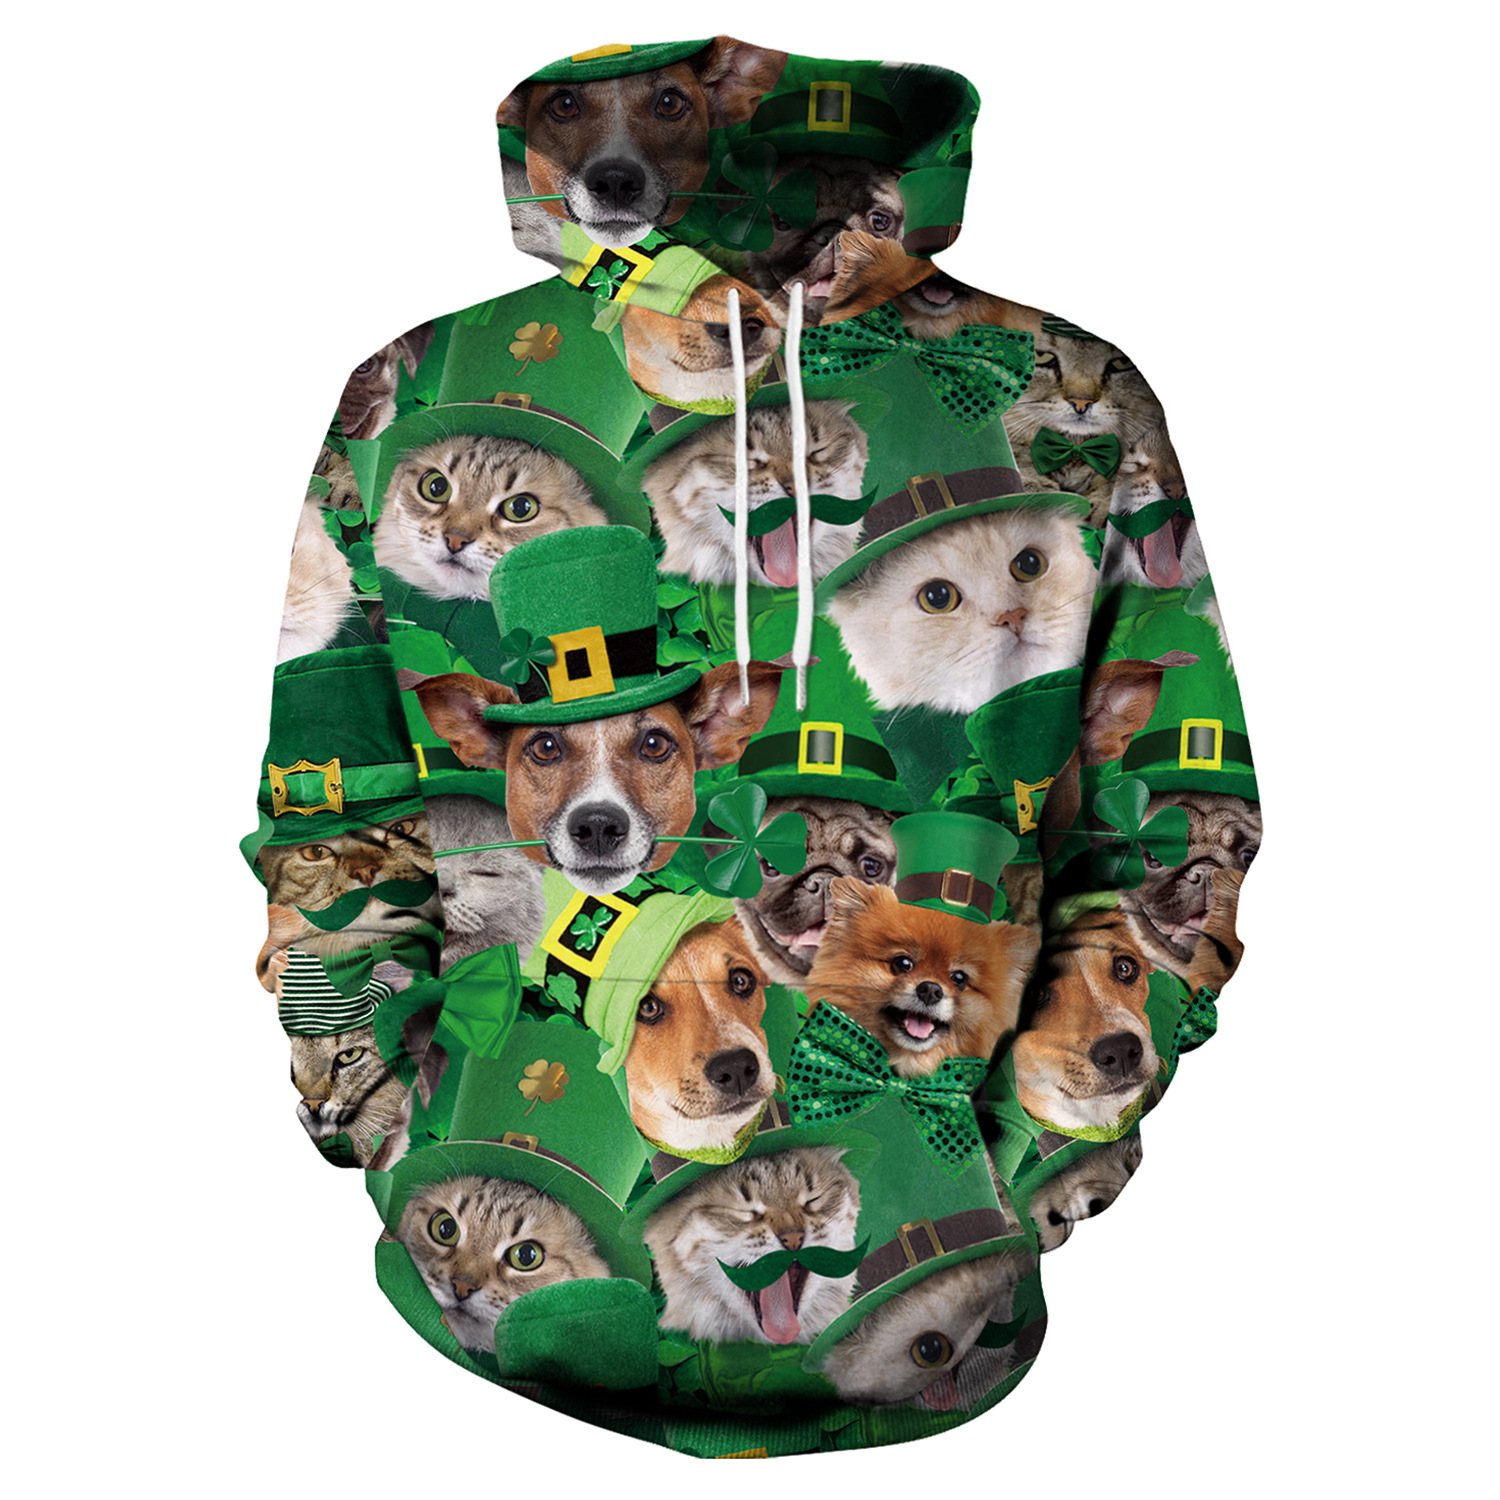 St Patrick's Day Green Hot Cat Dog Shamrocks Print Hoodies Men Hoodie with Hat Round Neck Loose Sweatshirt Pullover Streetwear